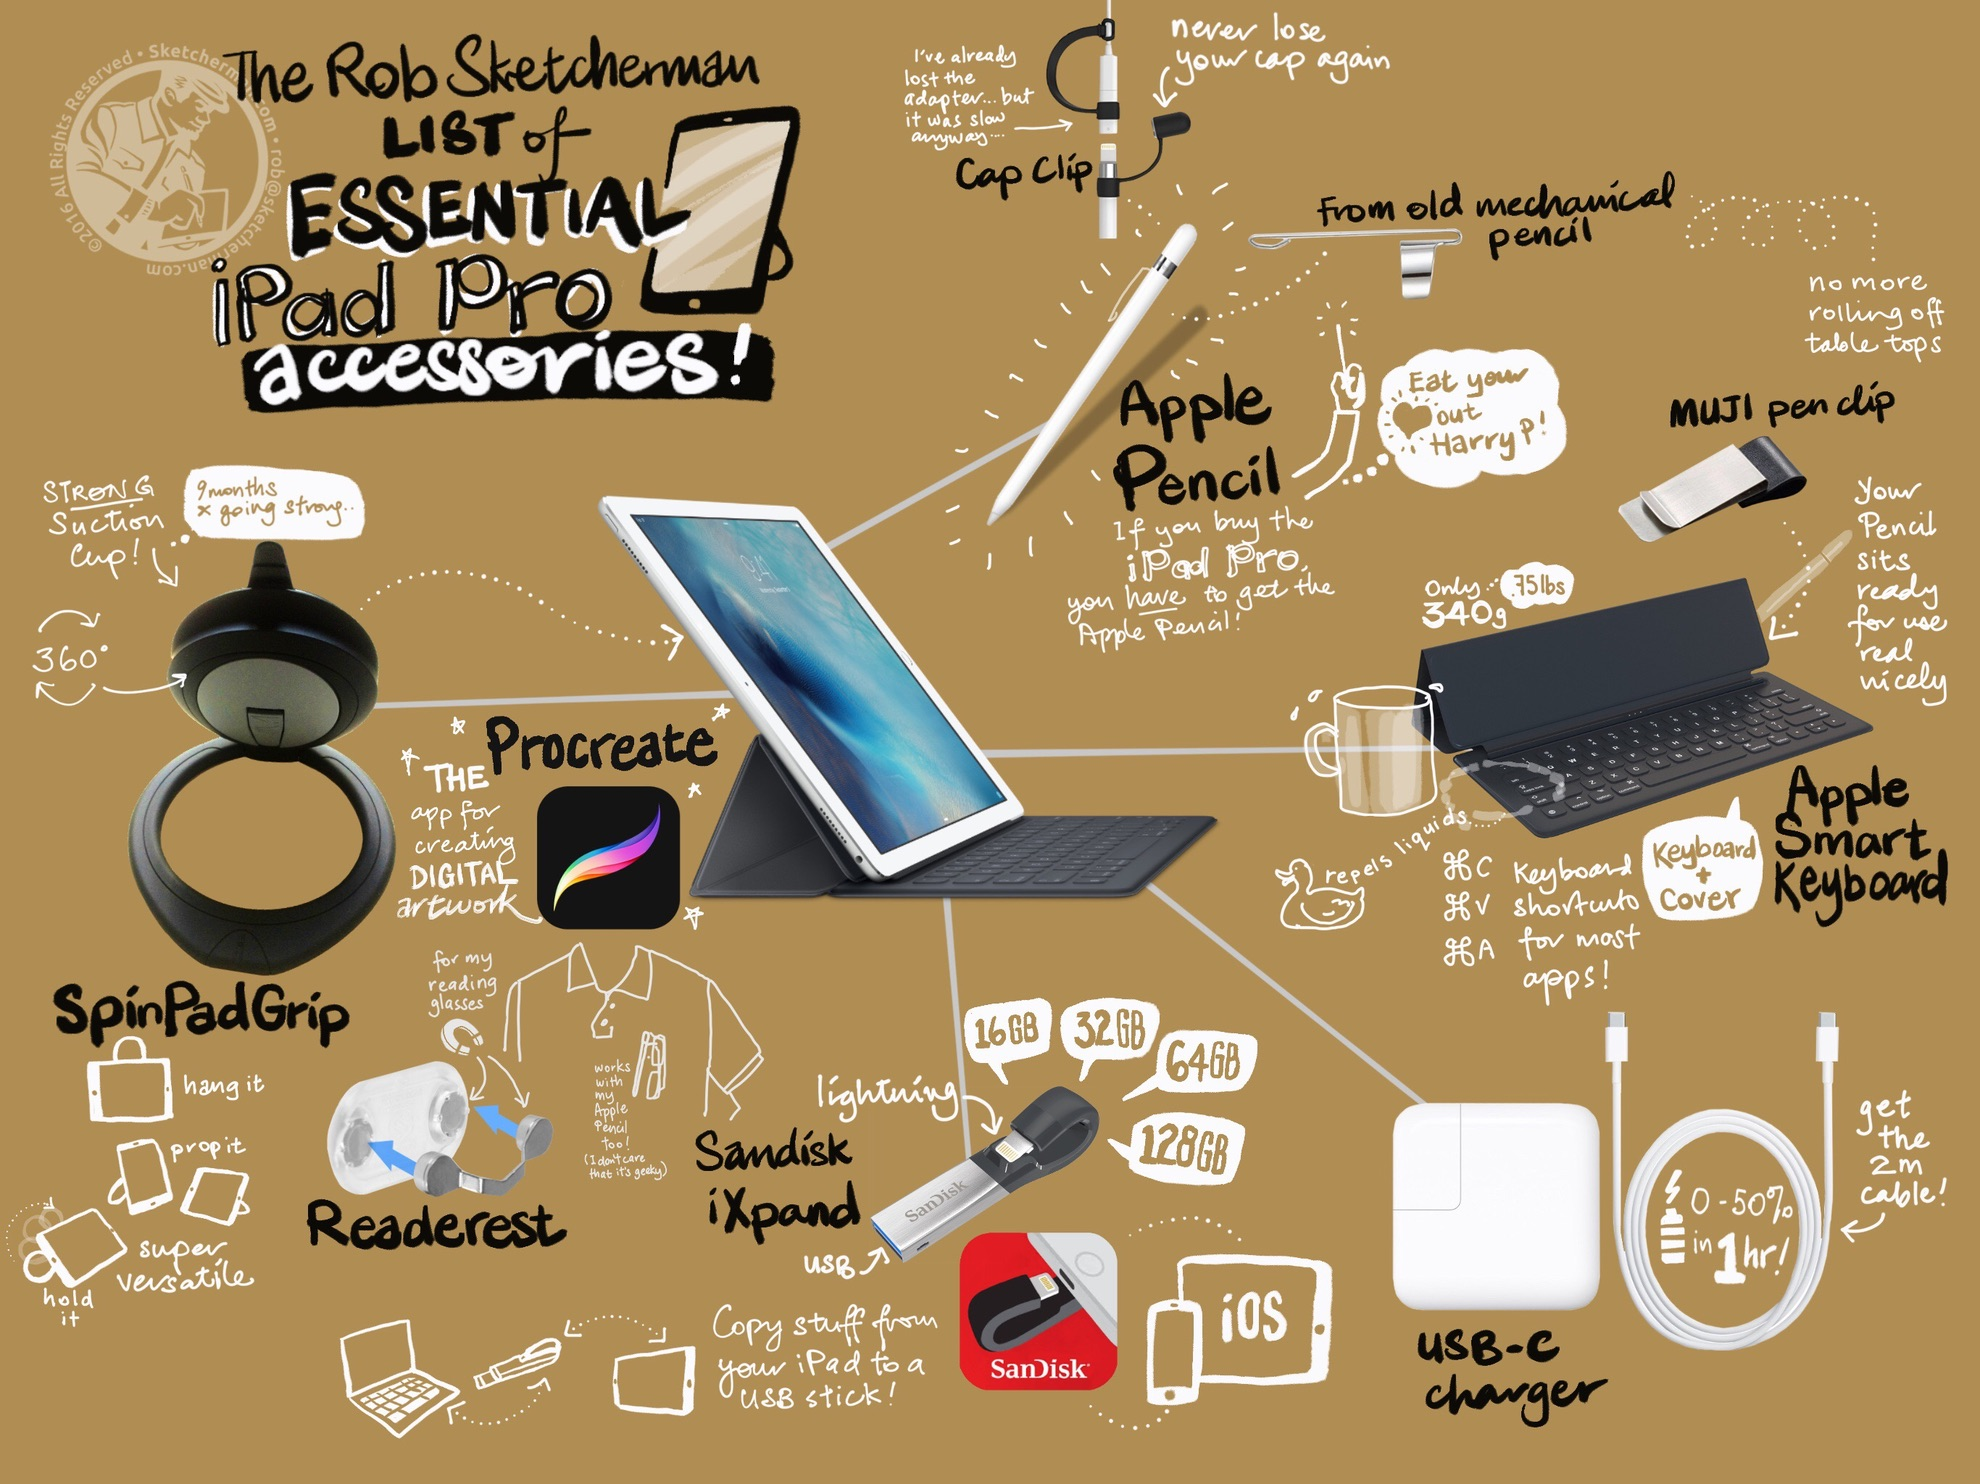 What's that thing on your iPad? Where did you get it? What else do you use? All answers a click away.